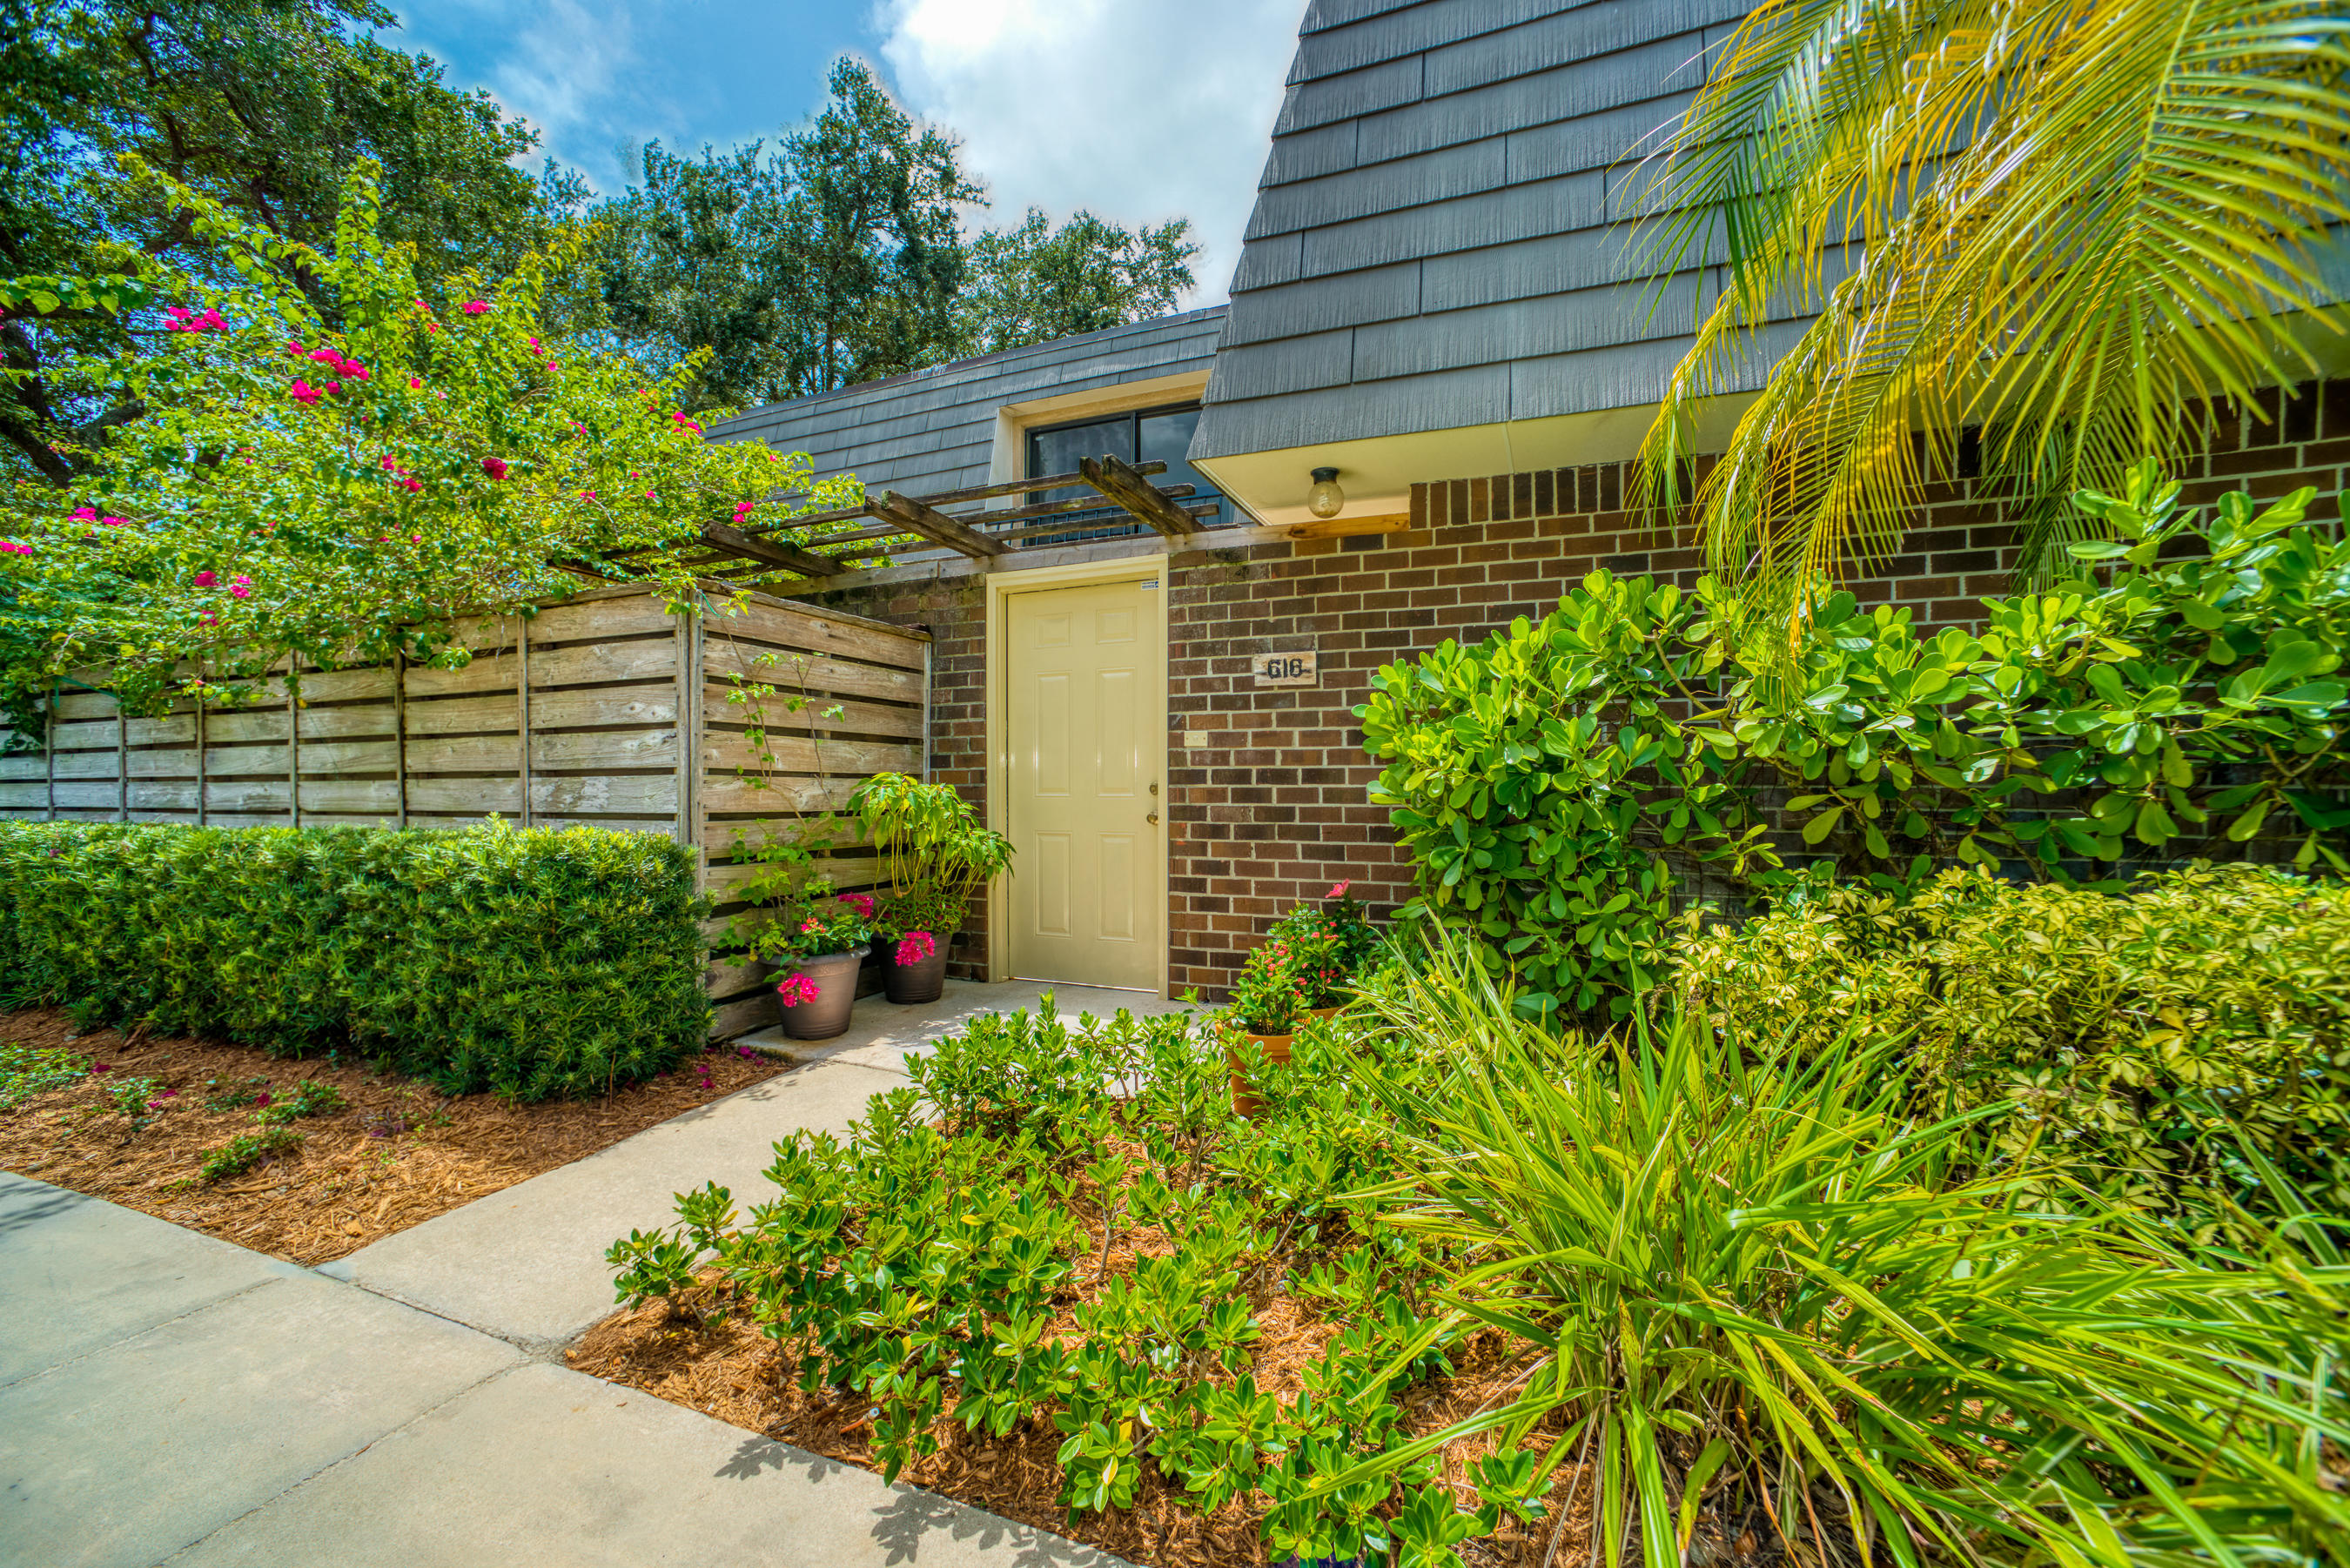 Home for sale in Glenwood Palm Beach Gardens Florida